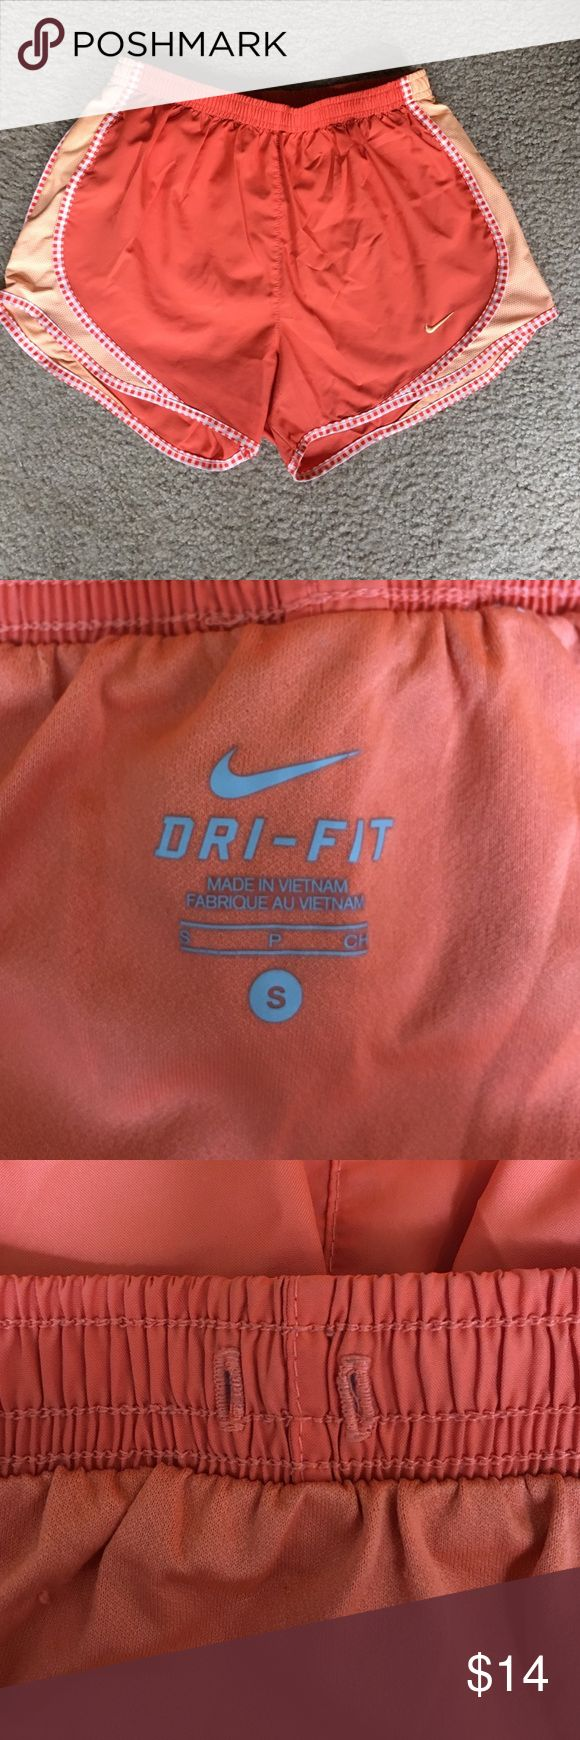 Orange Nike dry fit shorts Orange Nike dry fit shorts size small. String has been pulled out. Nike Shorts